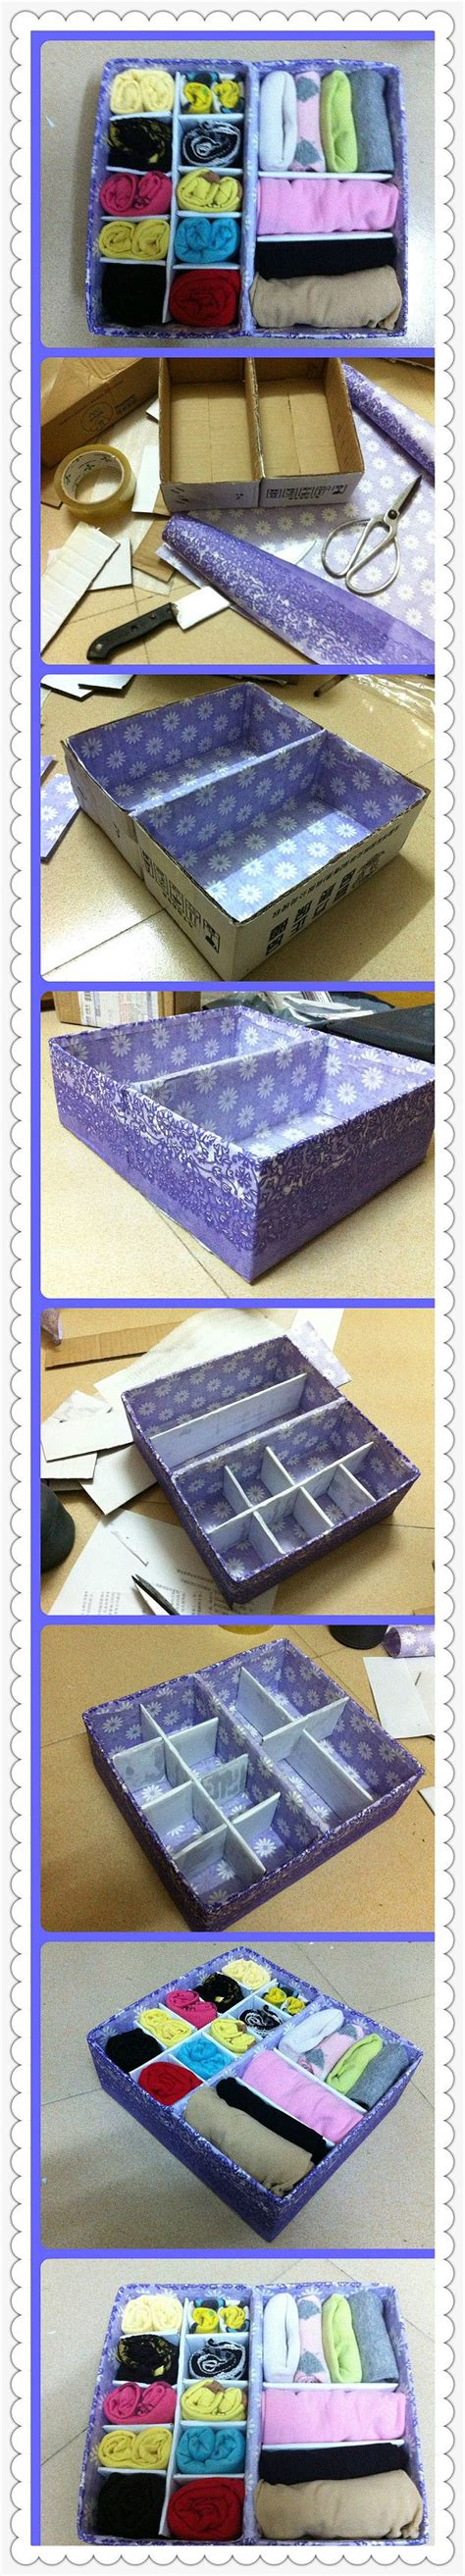 diy storage ideas for clothes diy clothes organizer for the home pinterest